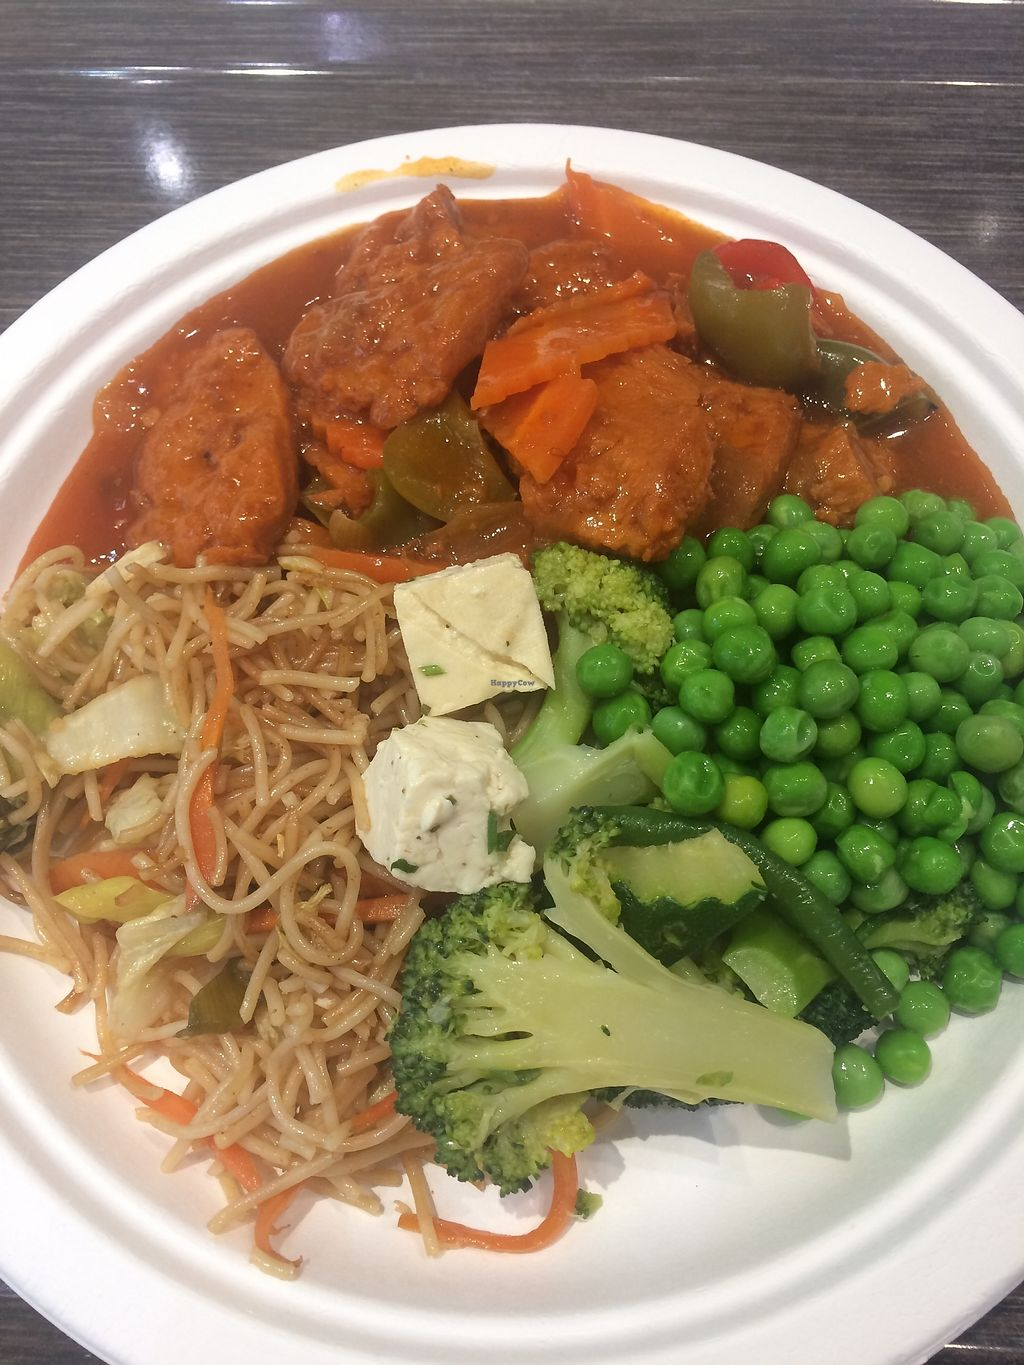 """Photo of Loving Hut - Spalena  by <a href=""""/members/profile/AnetaB%C3%A1rtov%C3%A1"""">AnetaBártová</a> <br/>My favorite lunch combo - veggies, noodles and soy meat!  <br/> December 13, 2017  - <a href='/contact/abuse/image/106853/335260'>Report</a>"""